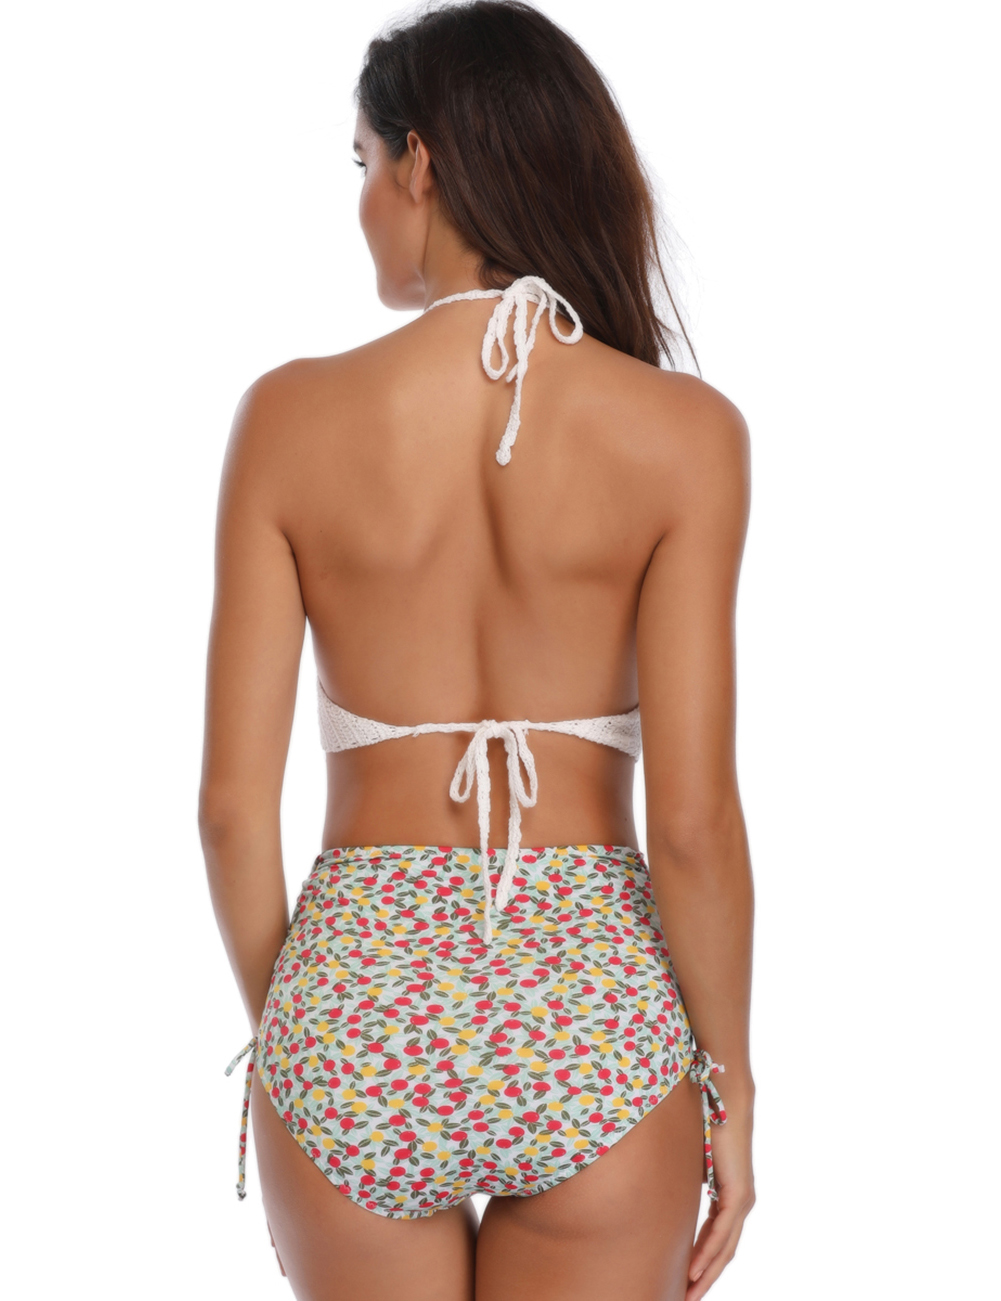 //cdn.affectcloud.com/hexinfashion/upload/imgs/Swimwear/Bikini/F185126-M01/F185126-M01-201911065dc272658b8f4.jpg